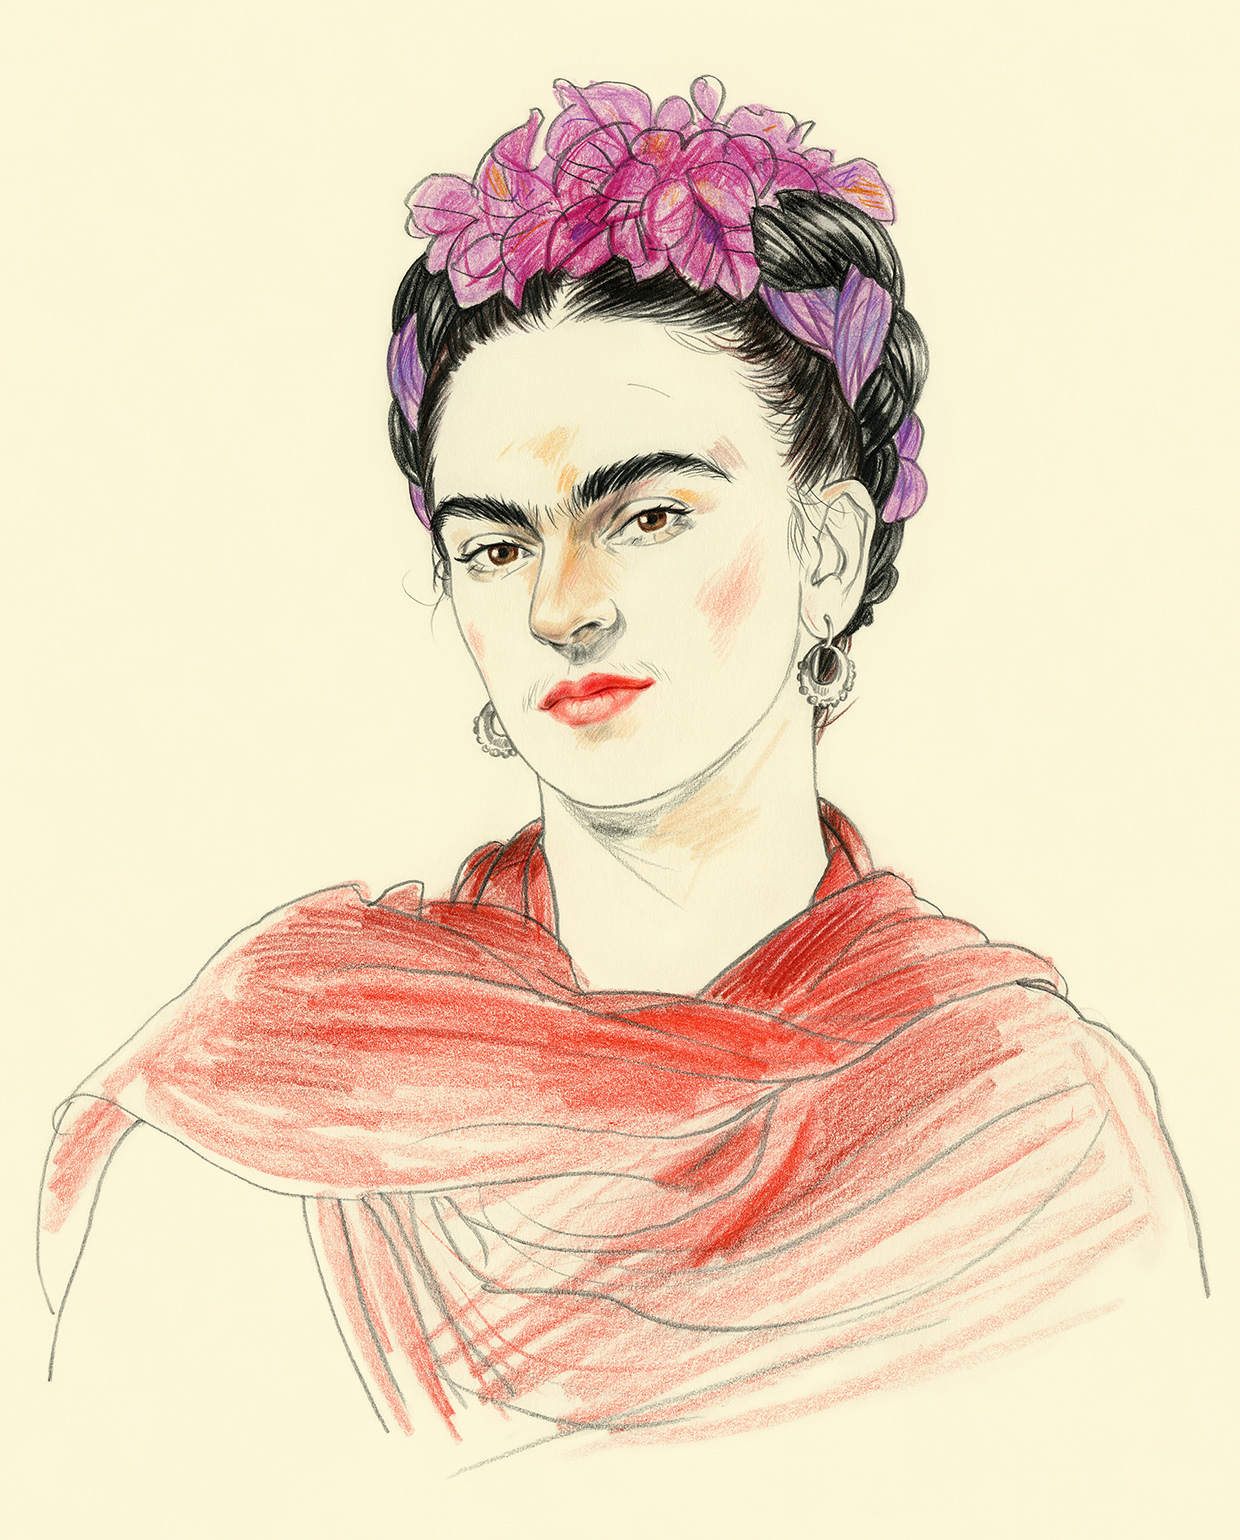 This exhibition presents a fresh perspective on Frida Kahlos compelling life story through her most intimate personal belongings and clothing